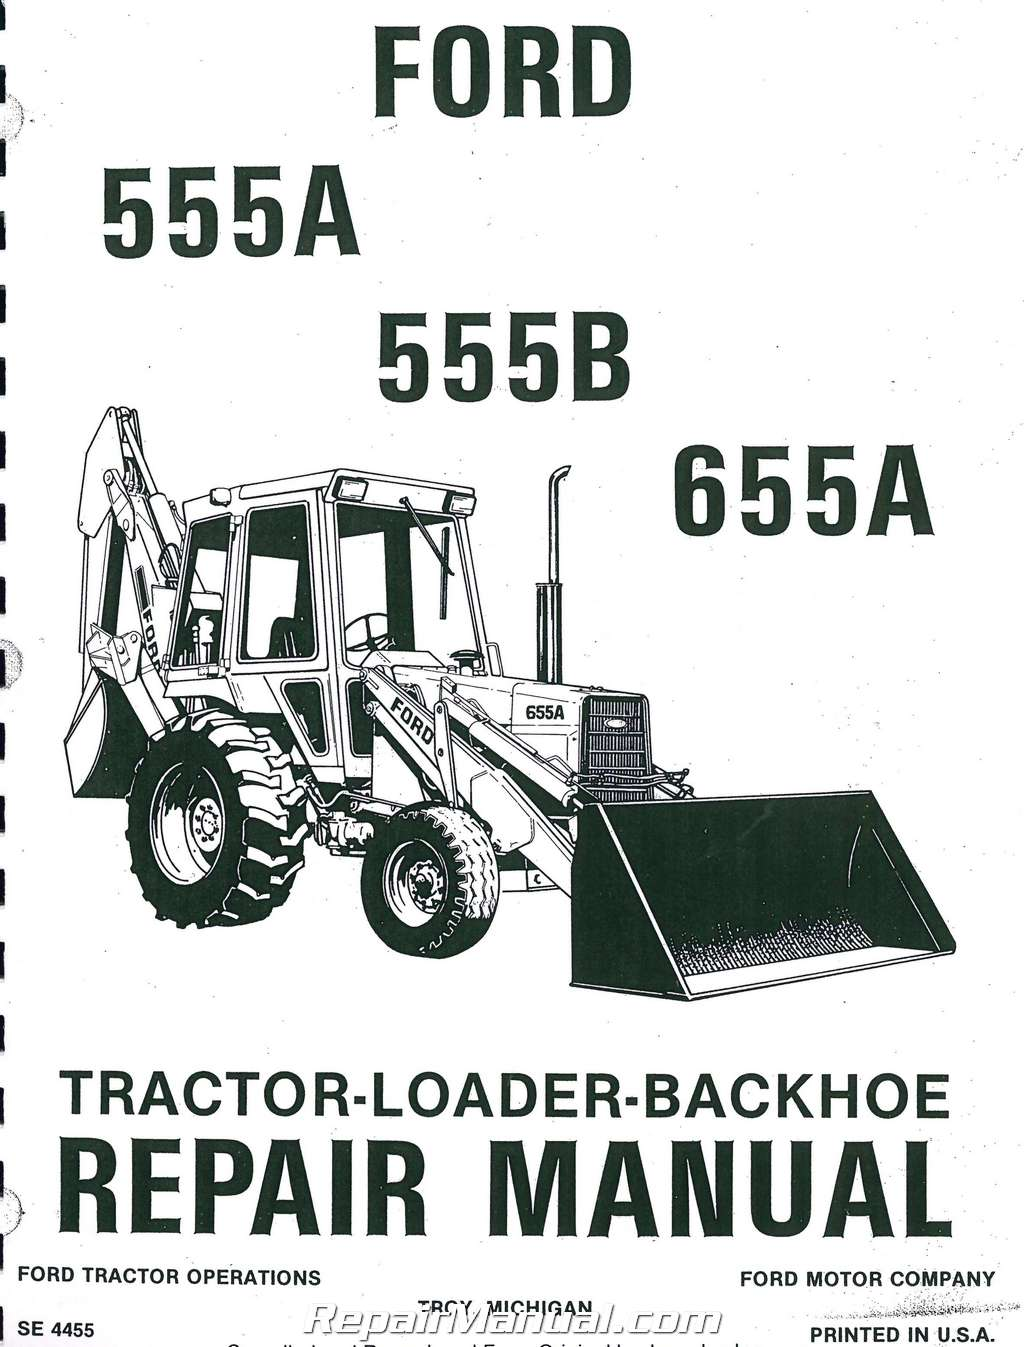 hight resolution of ford 555a 555b 655a tractor loader backhoe printed service manual